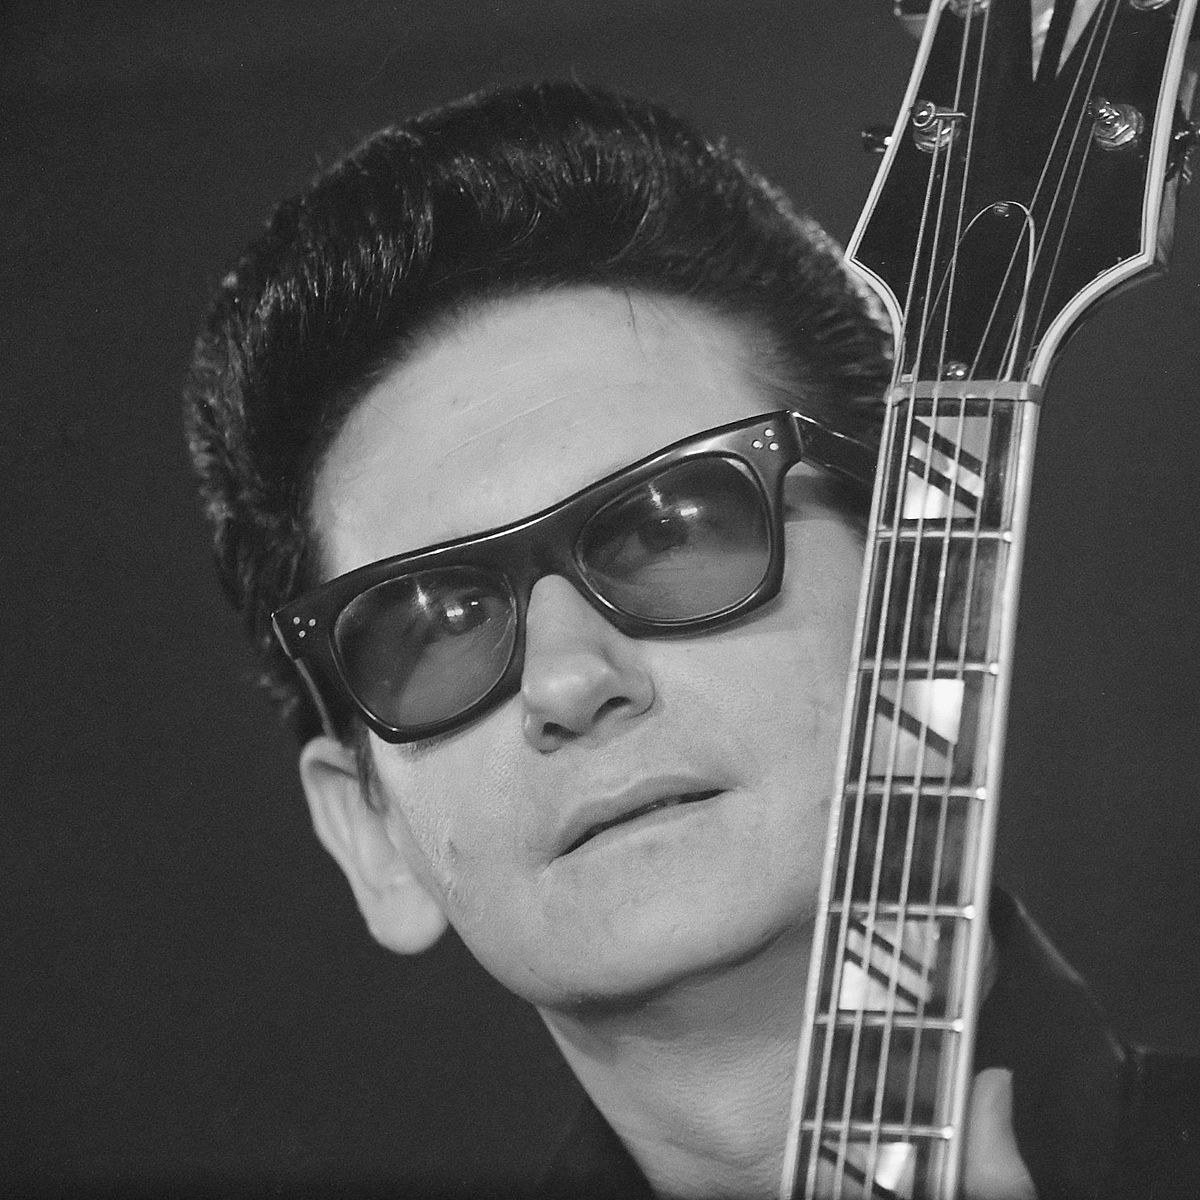 Roy orbison wikipedia